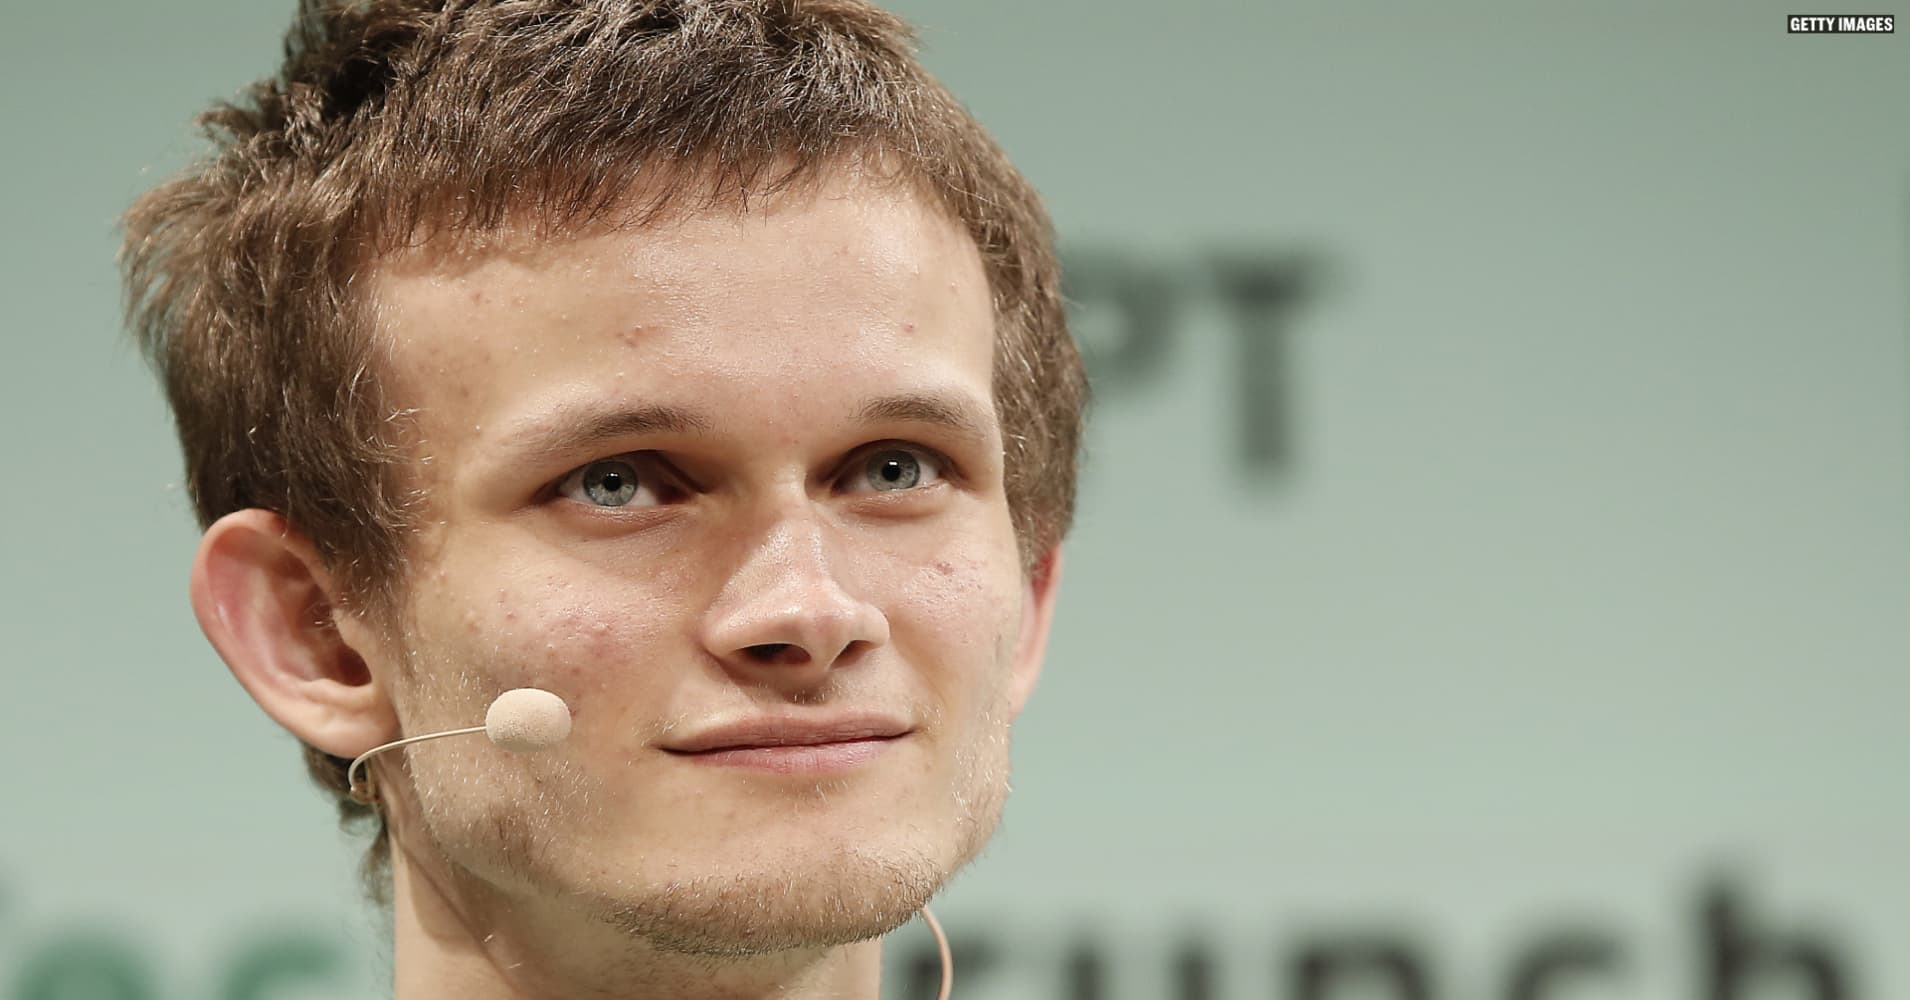 Meet Vitalik Buterin The 23 Year Old Founder Of Bitcoin Rival Ethereum